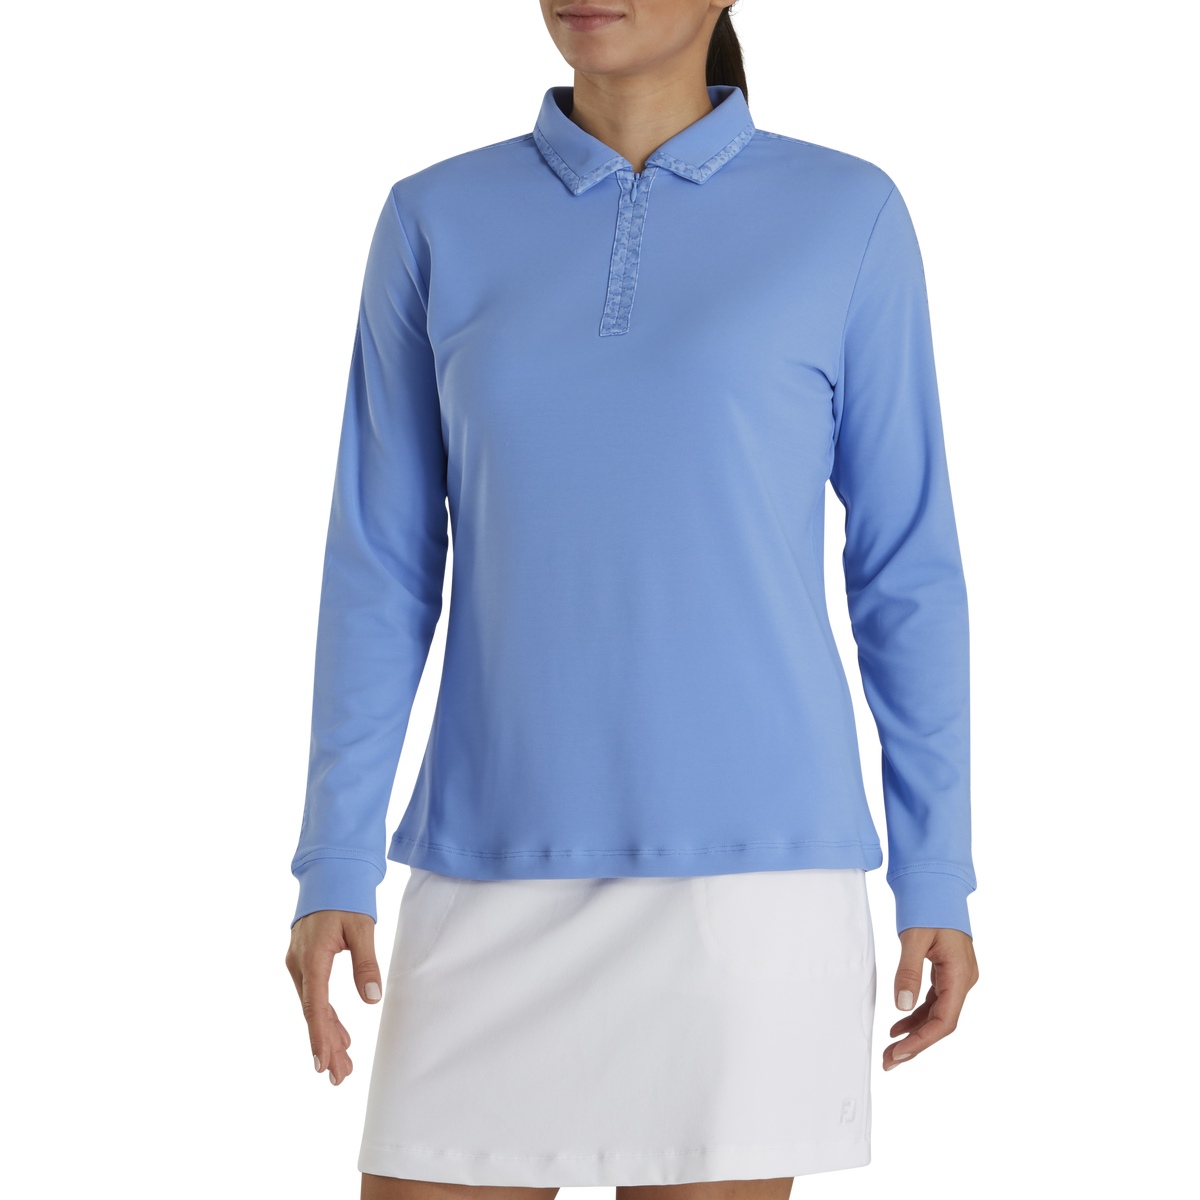 Quarter-Zip Sun Protection Women